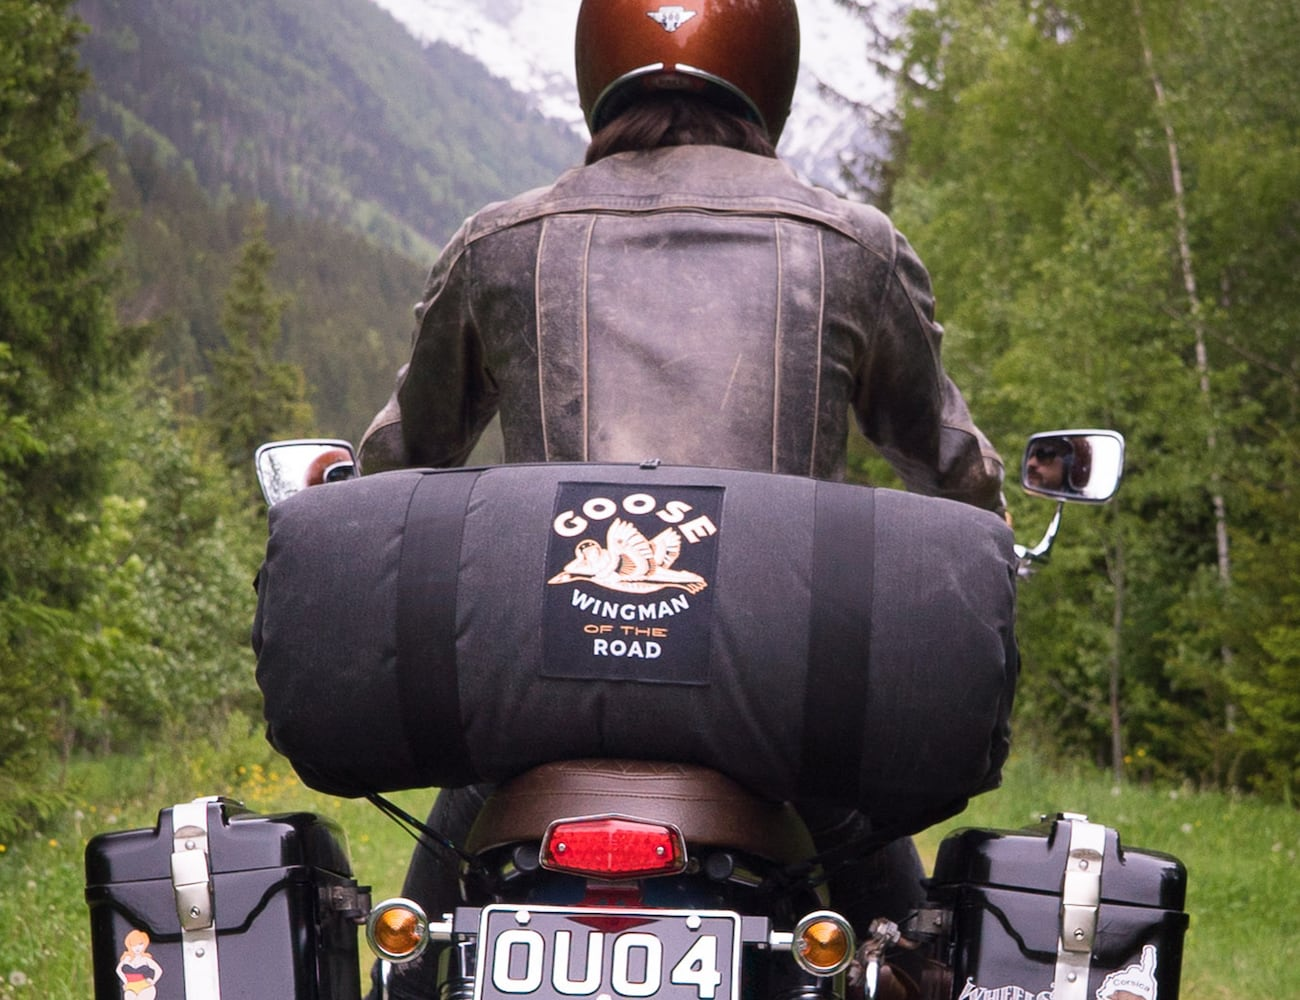 Goose Wingman Of The Road Motorcycle Camping System provides adventure